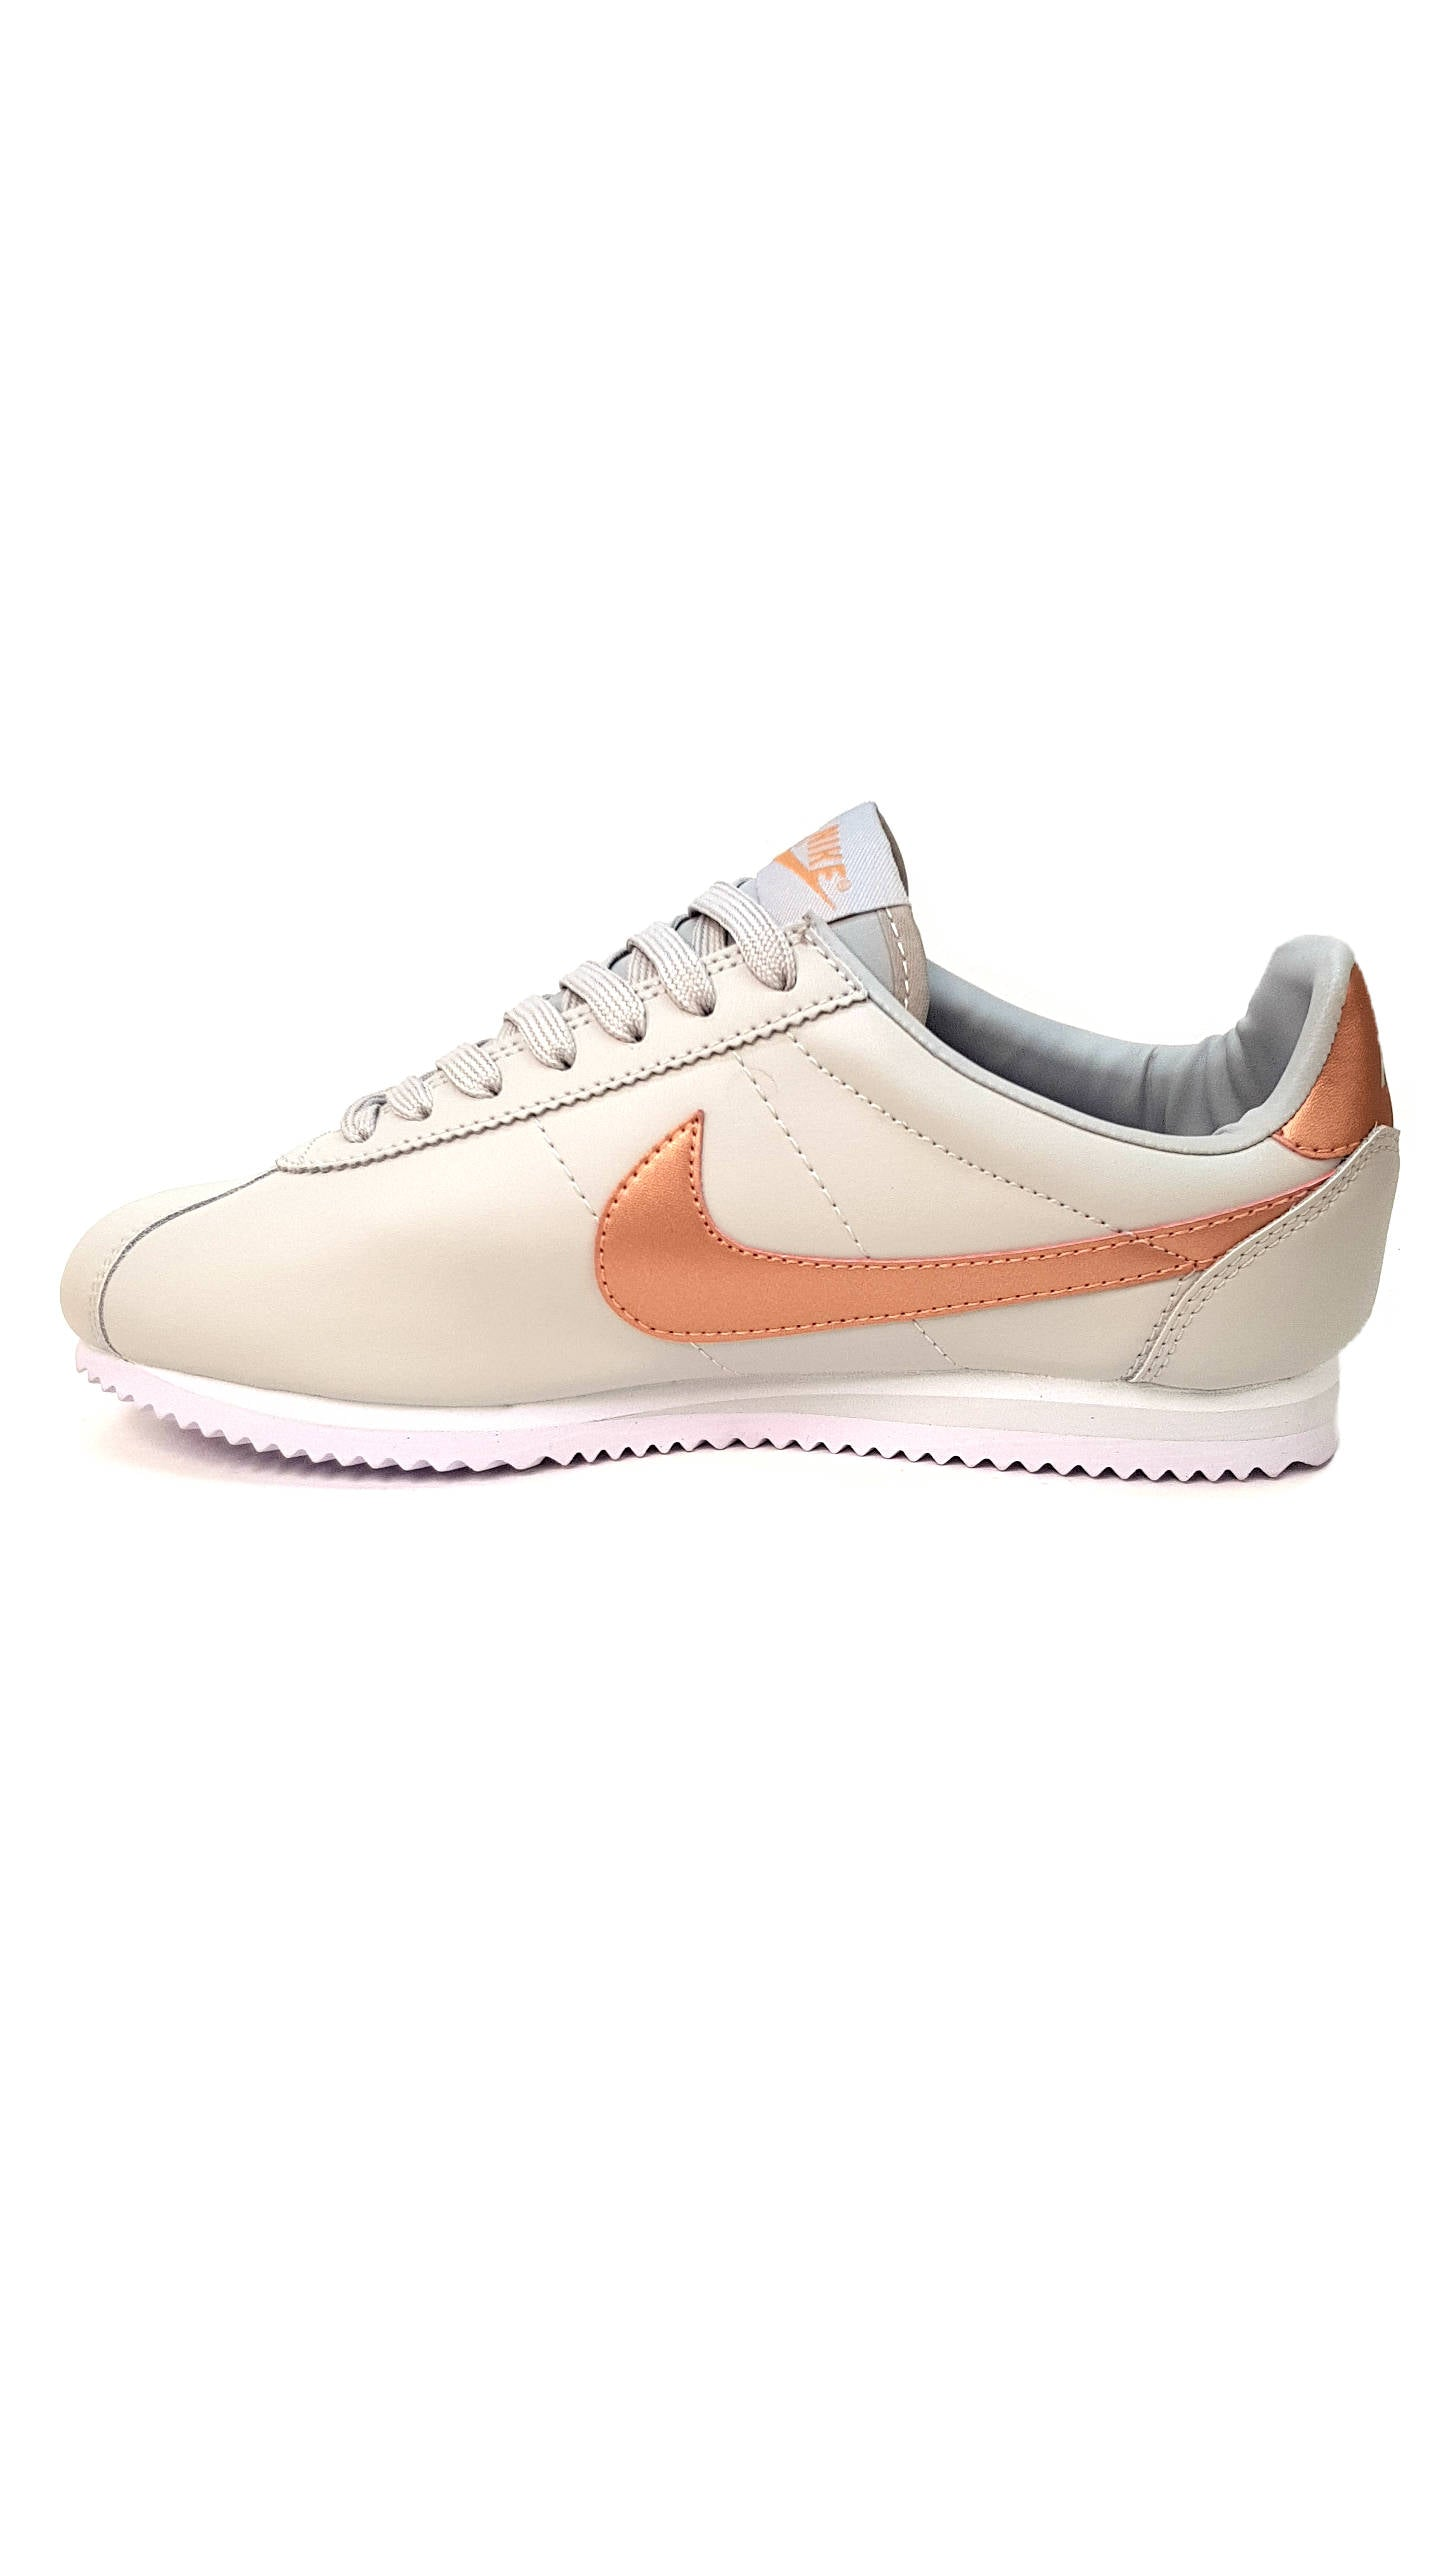 pretty nice 55765 2bf49 Cortez Premium Leather -Grey/Gold